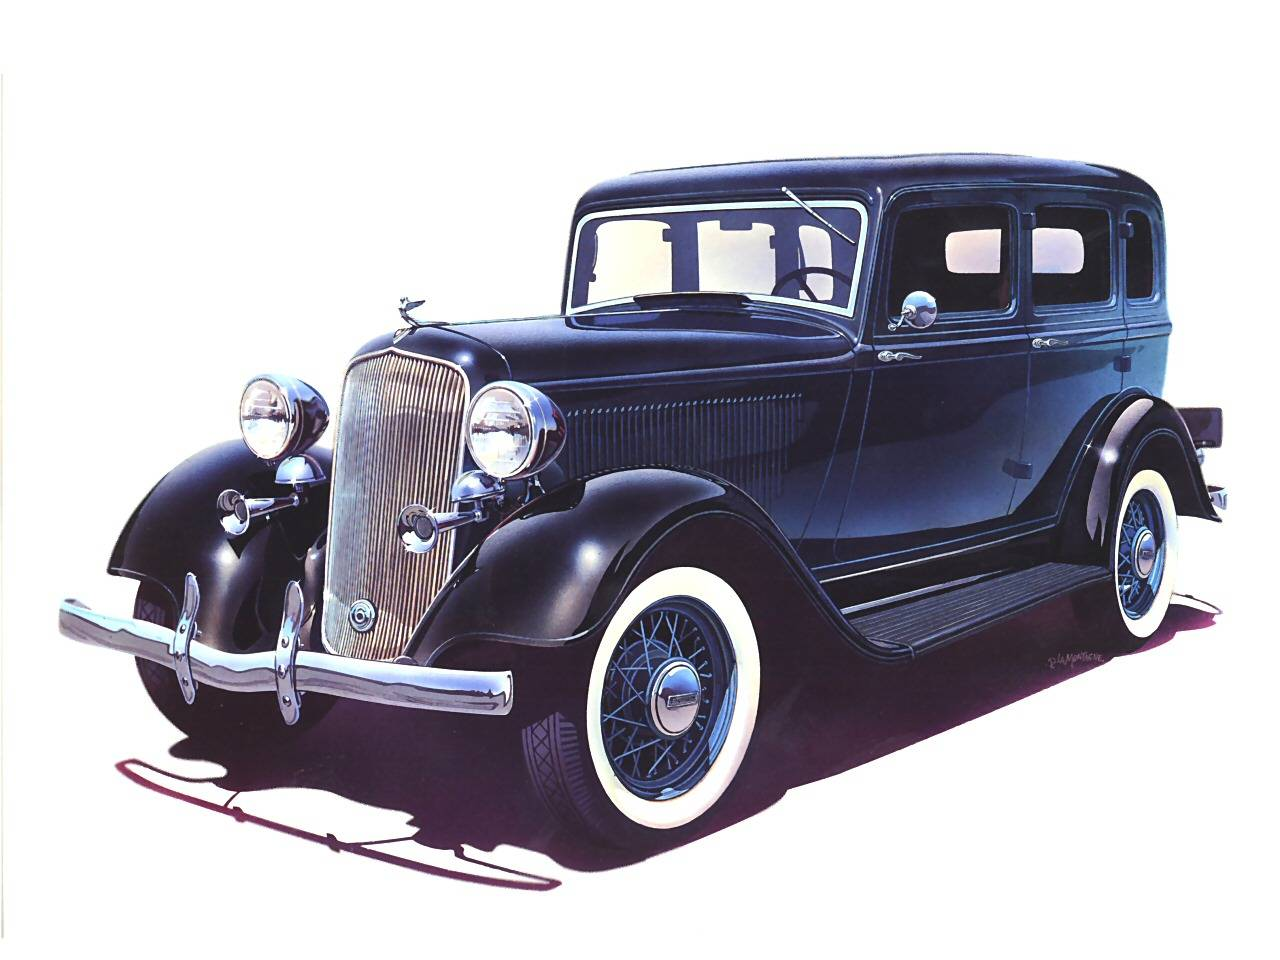 1933%20Plymouth%20PD%204-Door%20Sedan.jpg